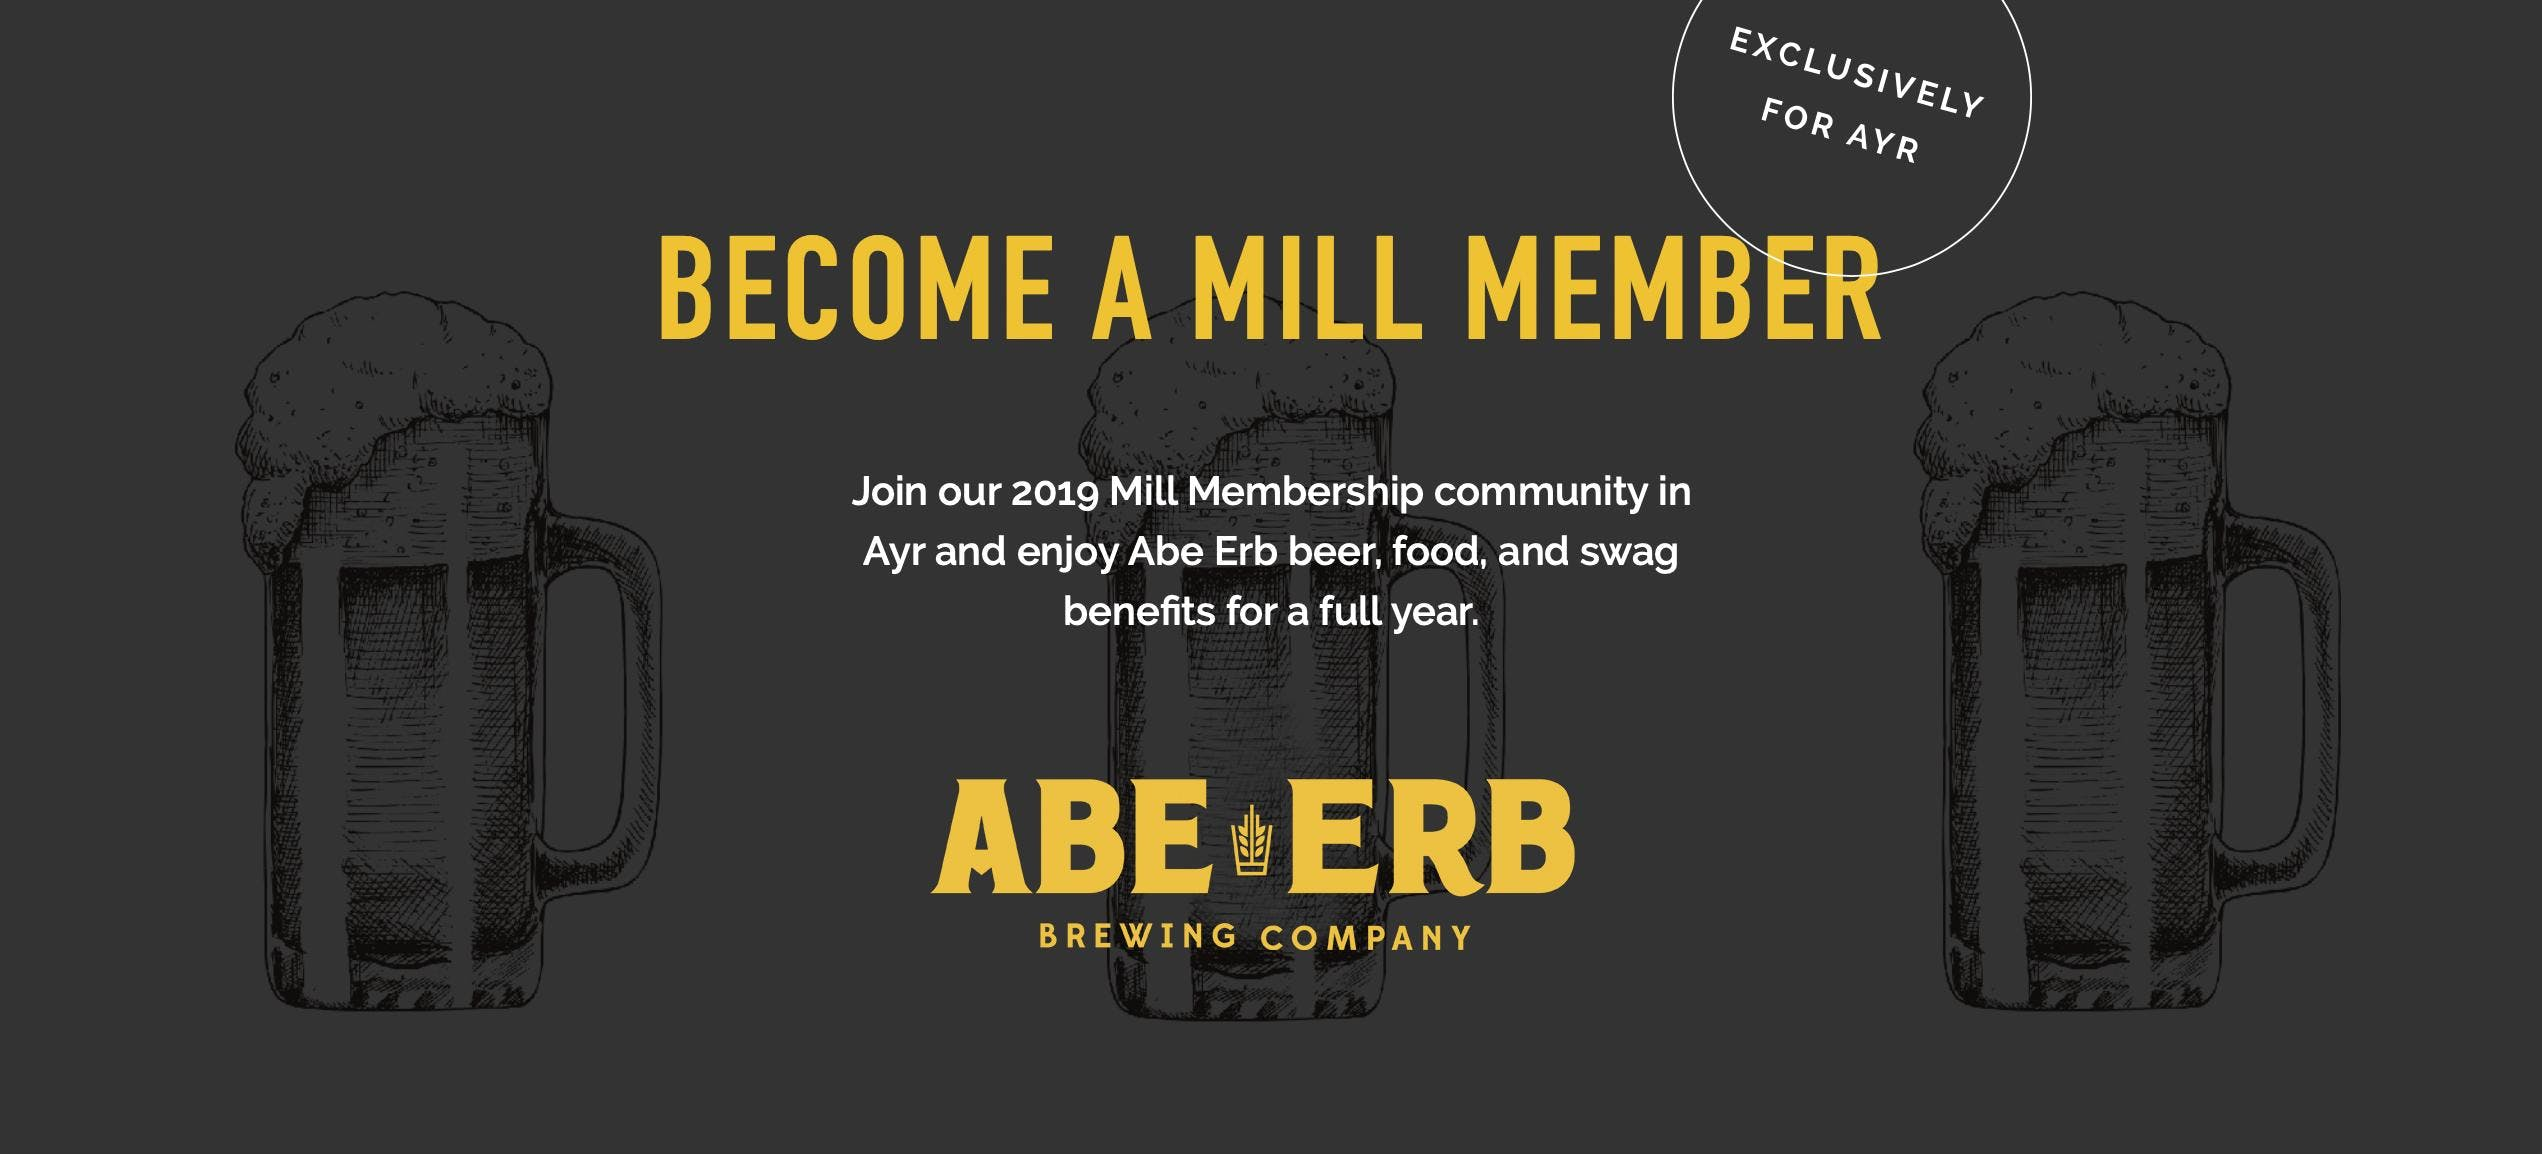 Abe Erb Brewing Company - 2019 Mill Membership